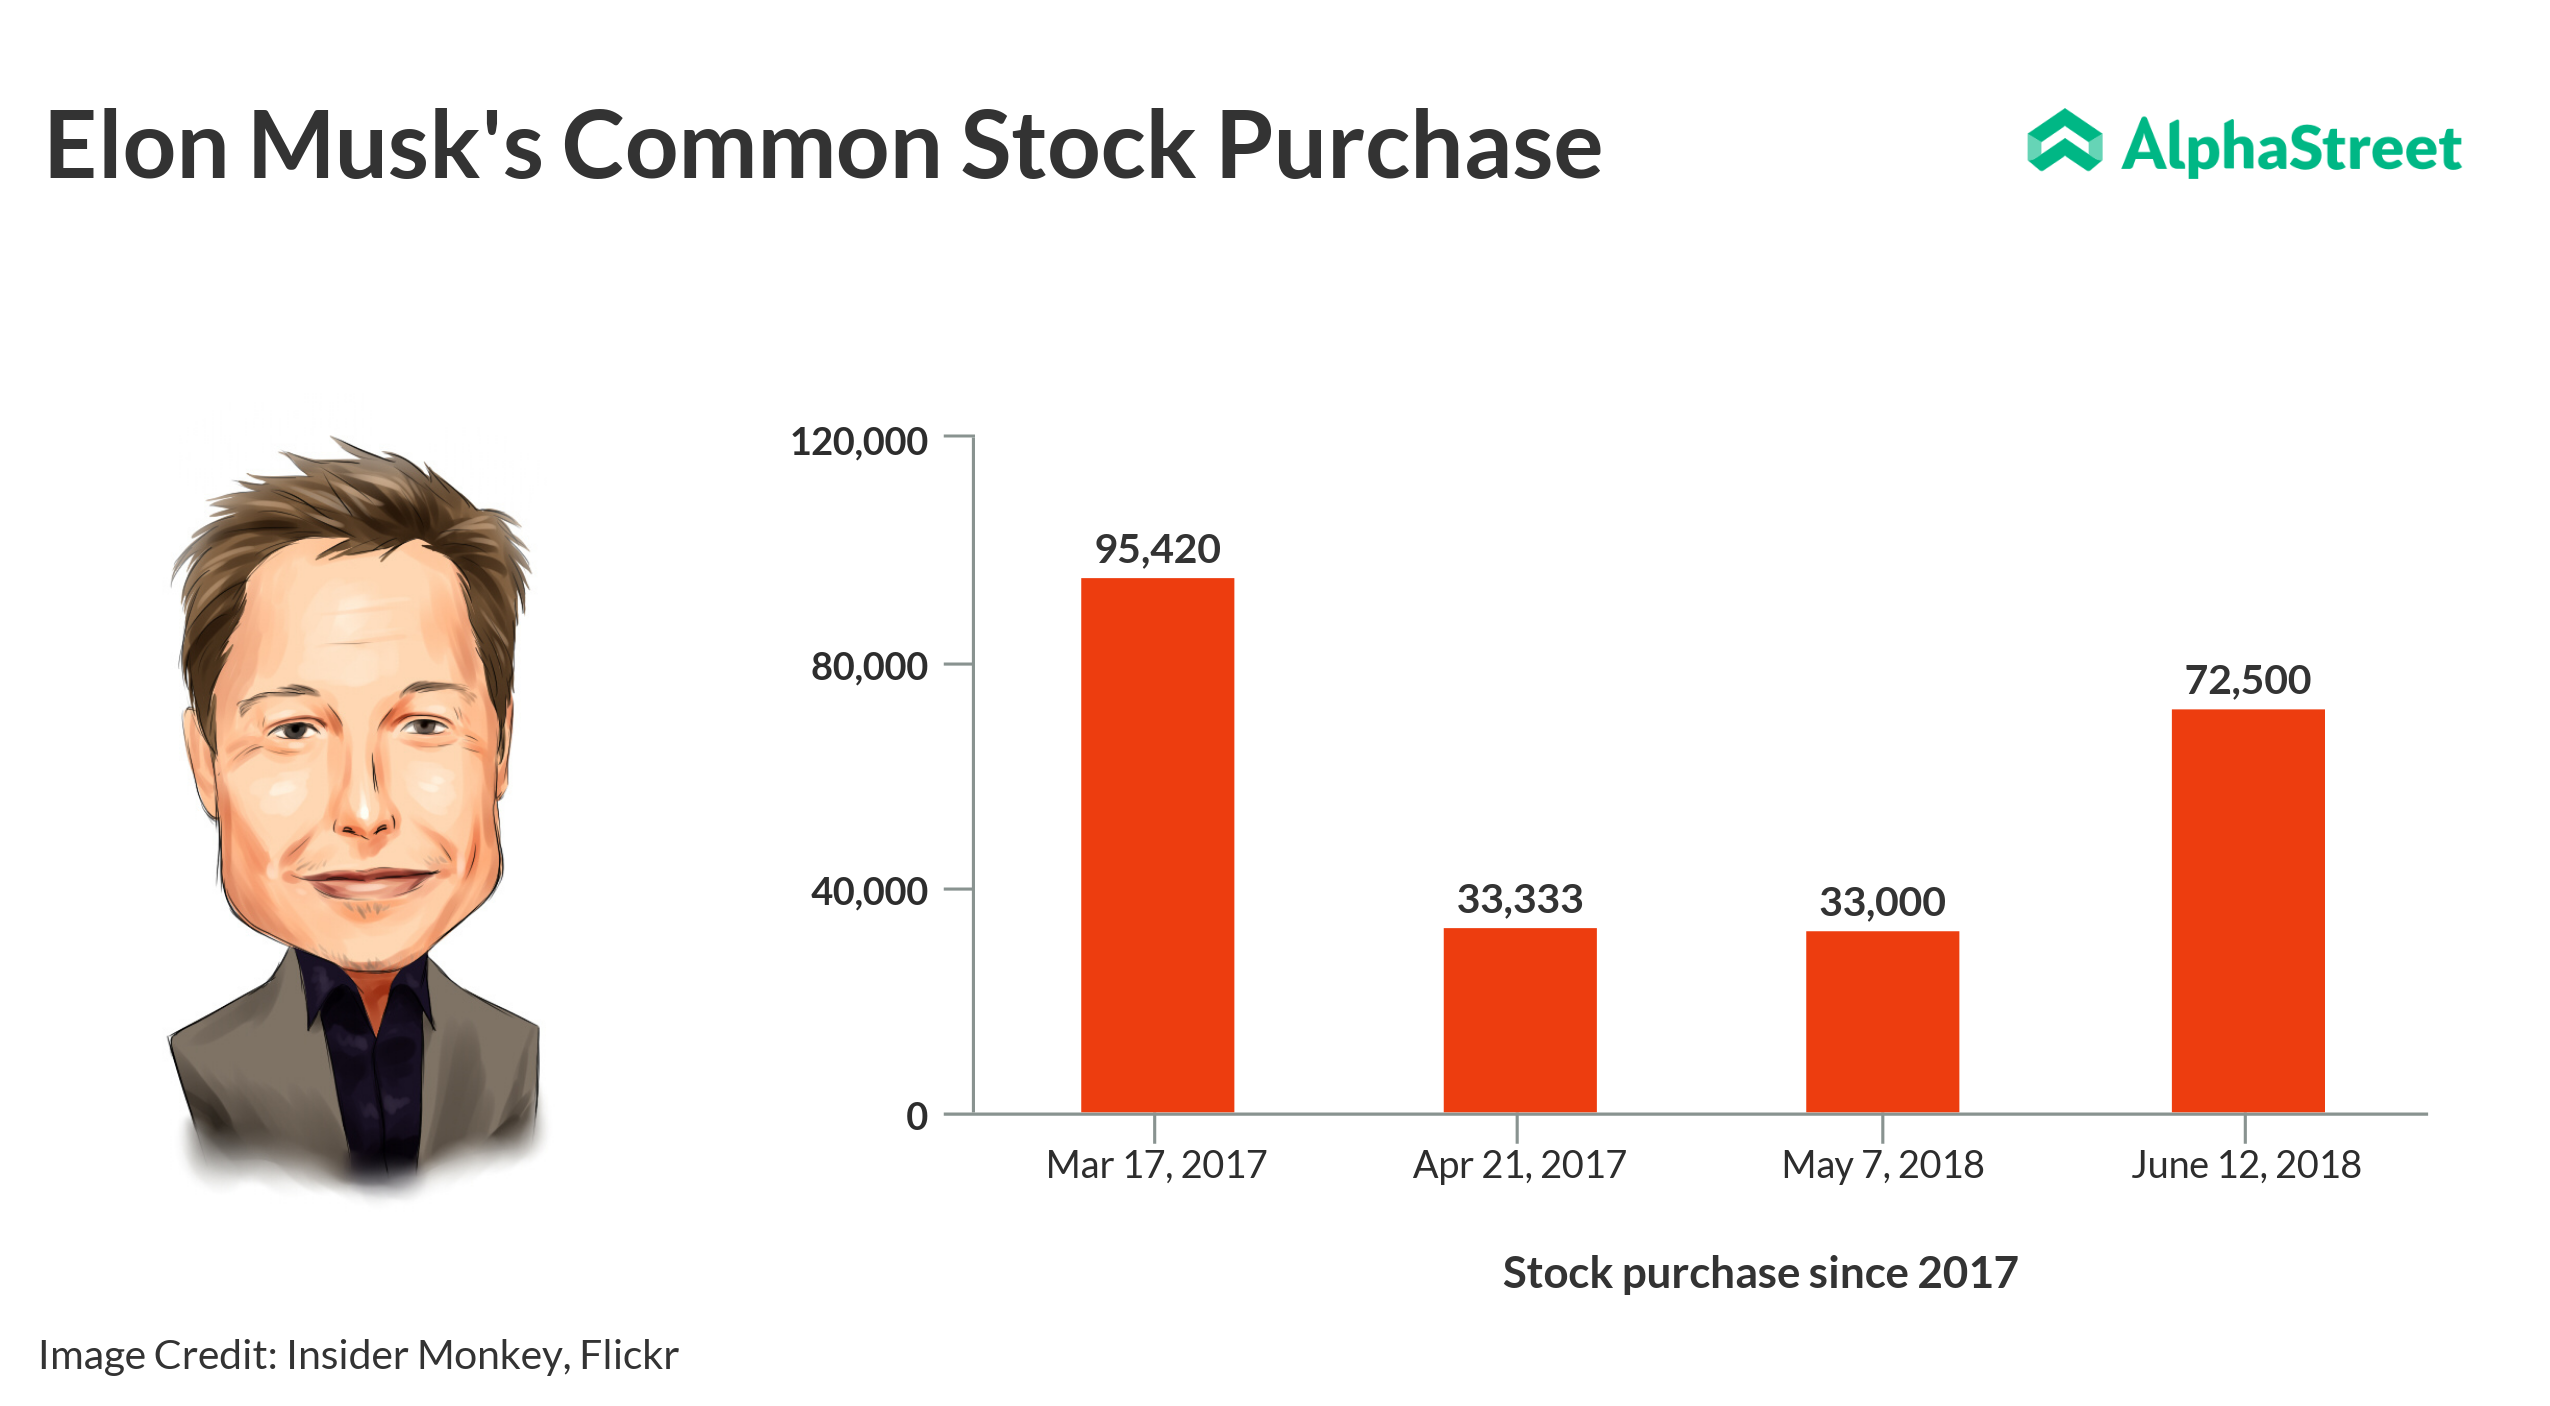 Elon Musk Increases His Stake In Tesla Buys 72500 Shares Alphastreet